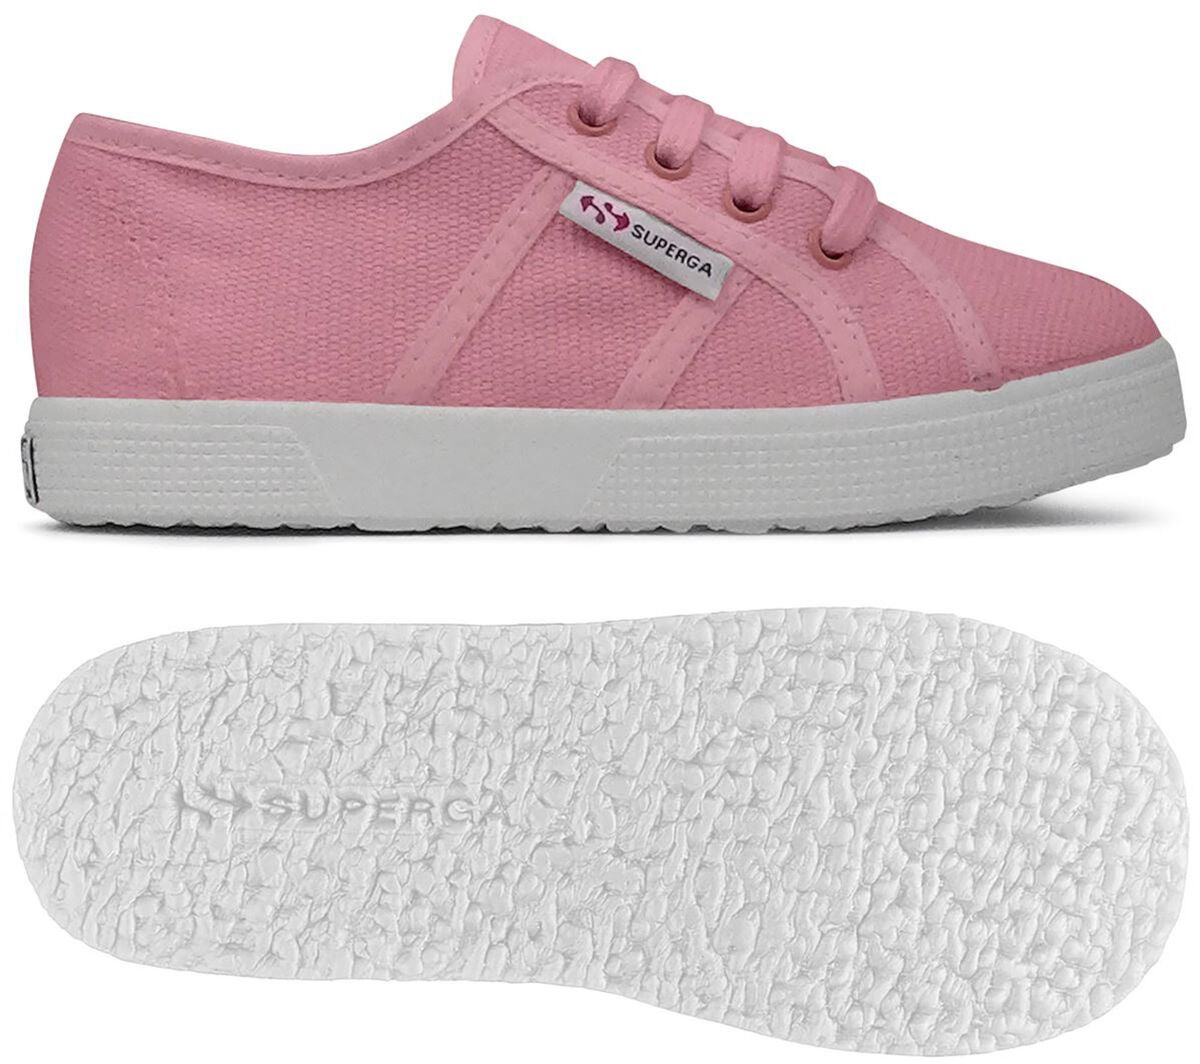 Superga 2750 Cotj Torchietto Tennarit, Begonia Pink